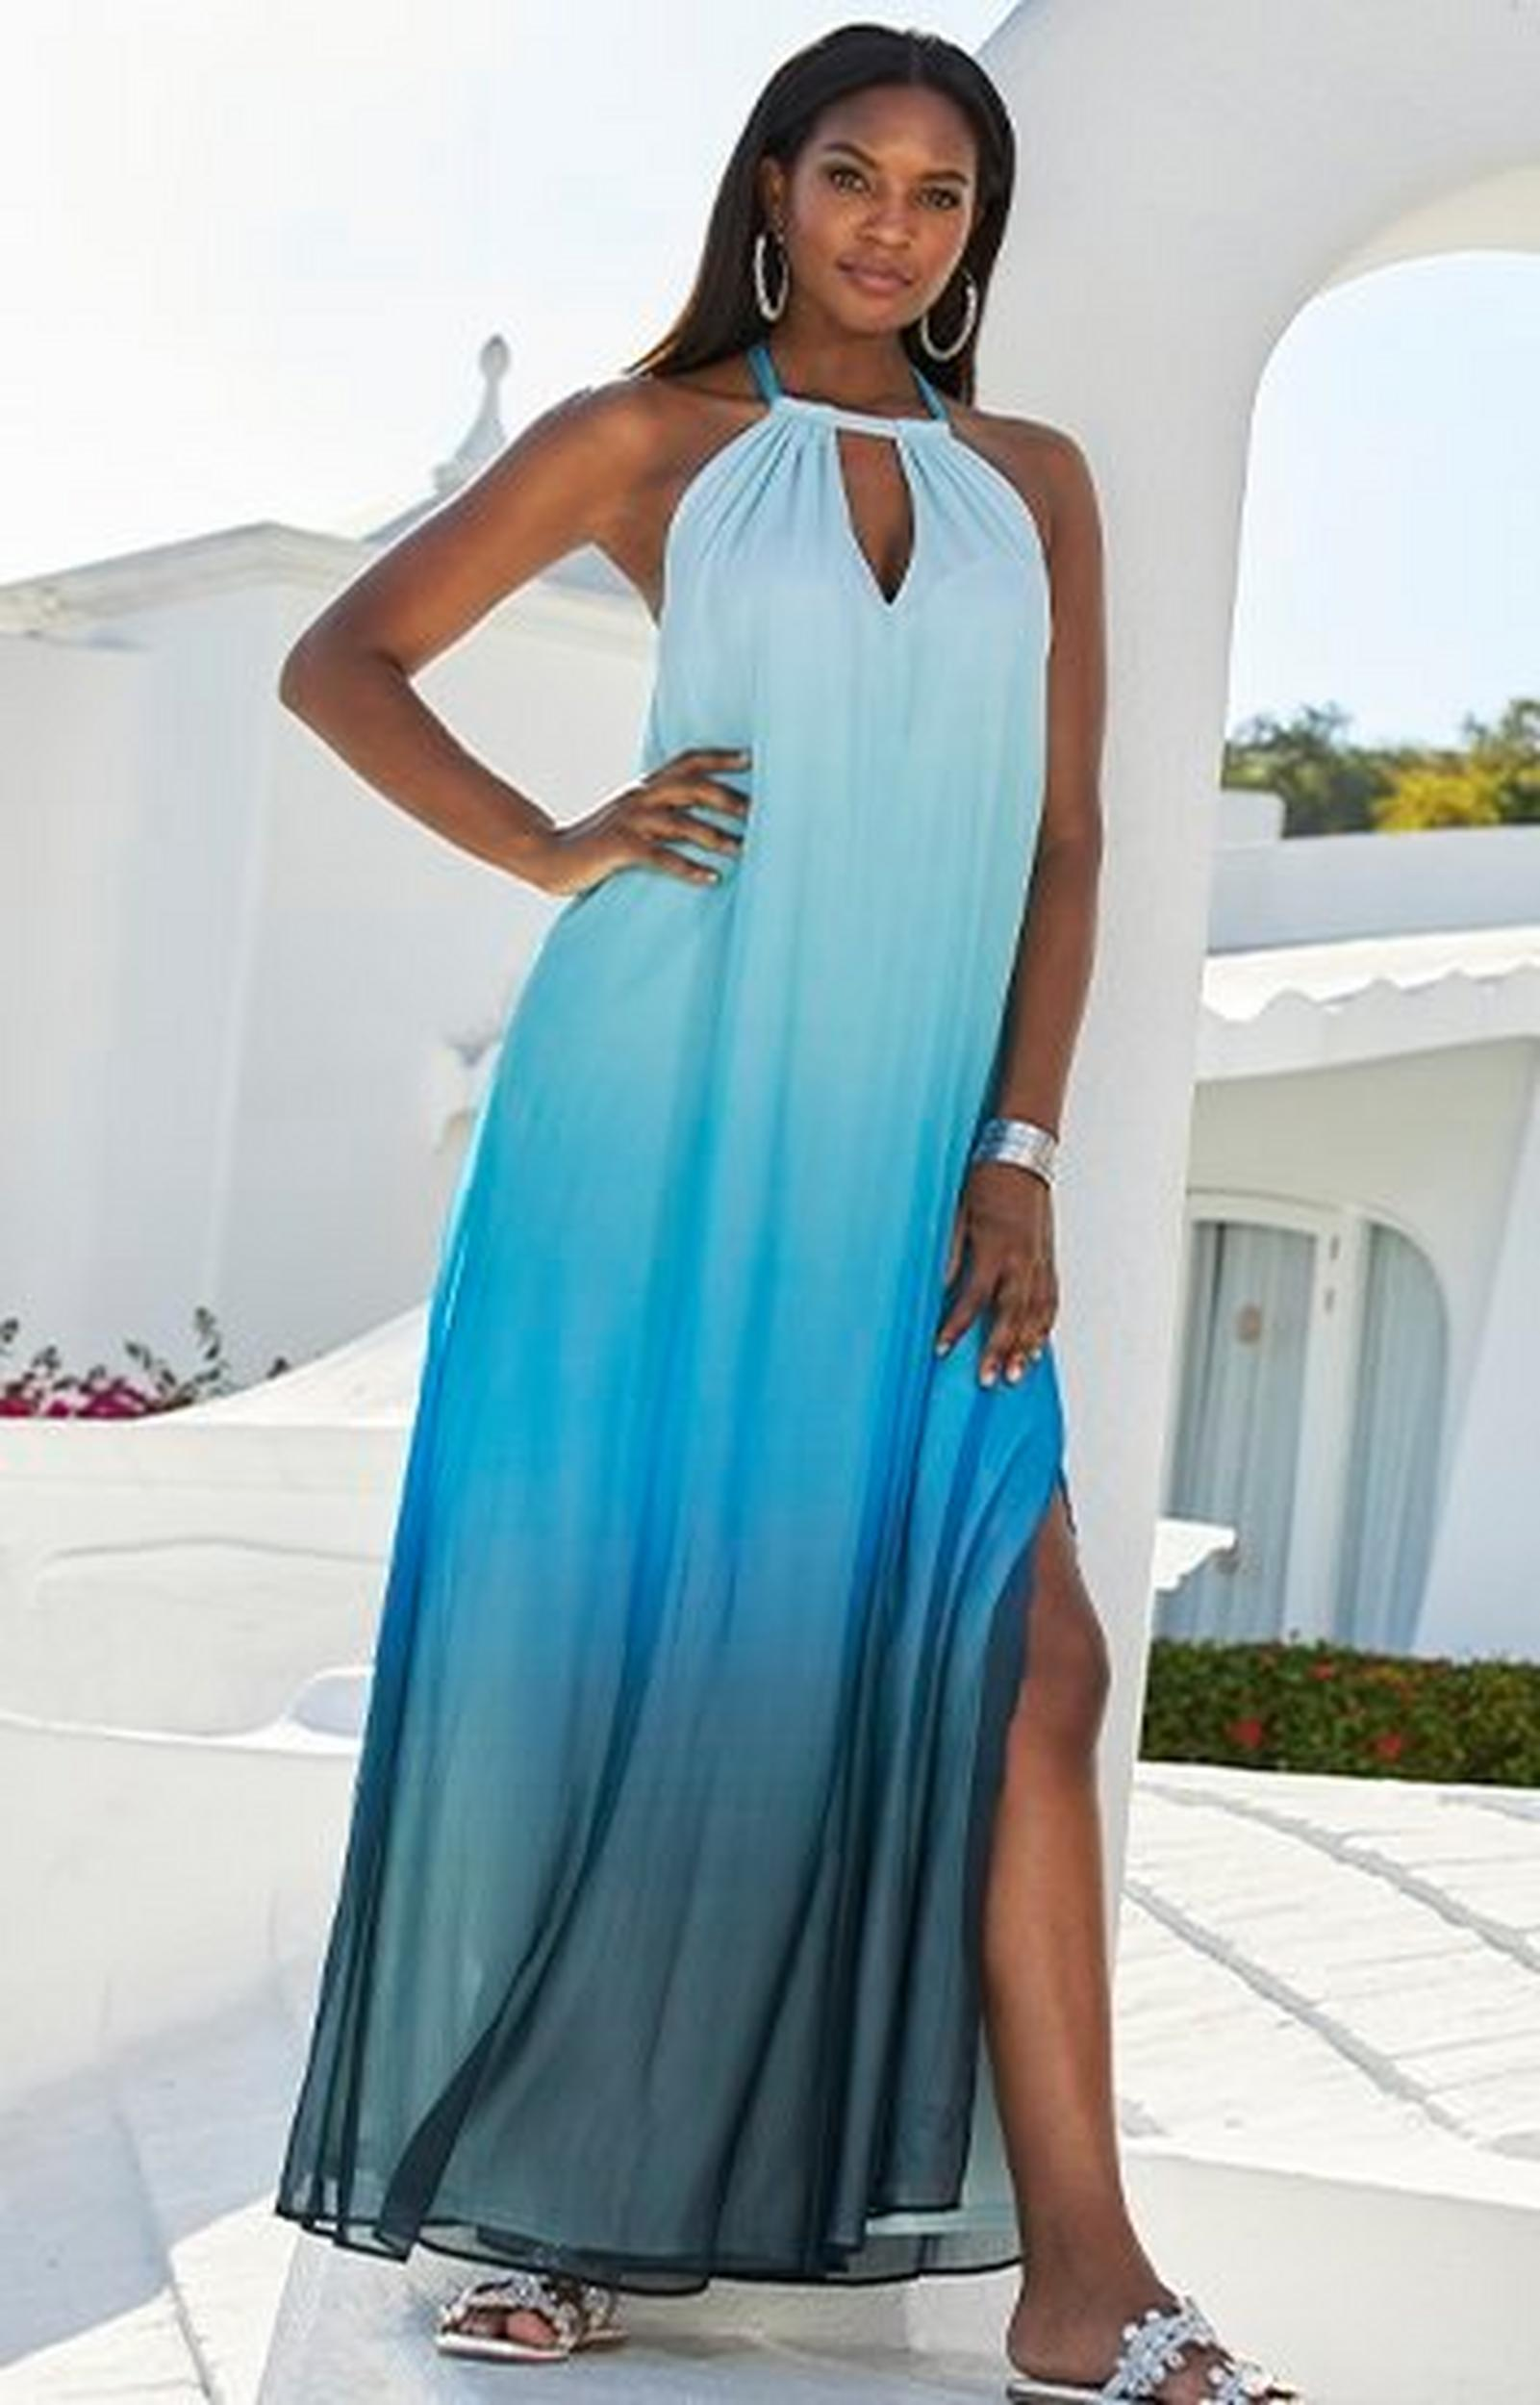 model wearing a blue ombre maxi dress with a halter neckline and silver crystal embellished sandals.